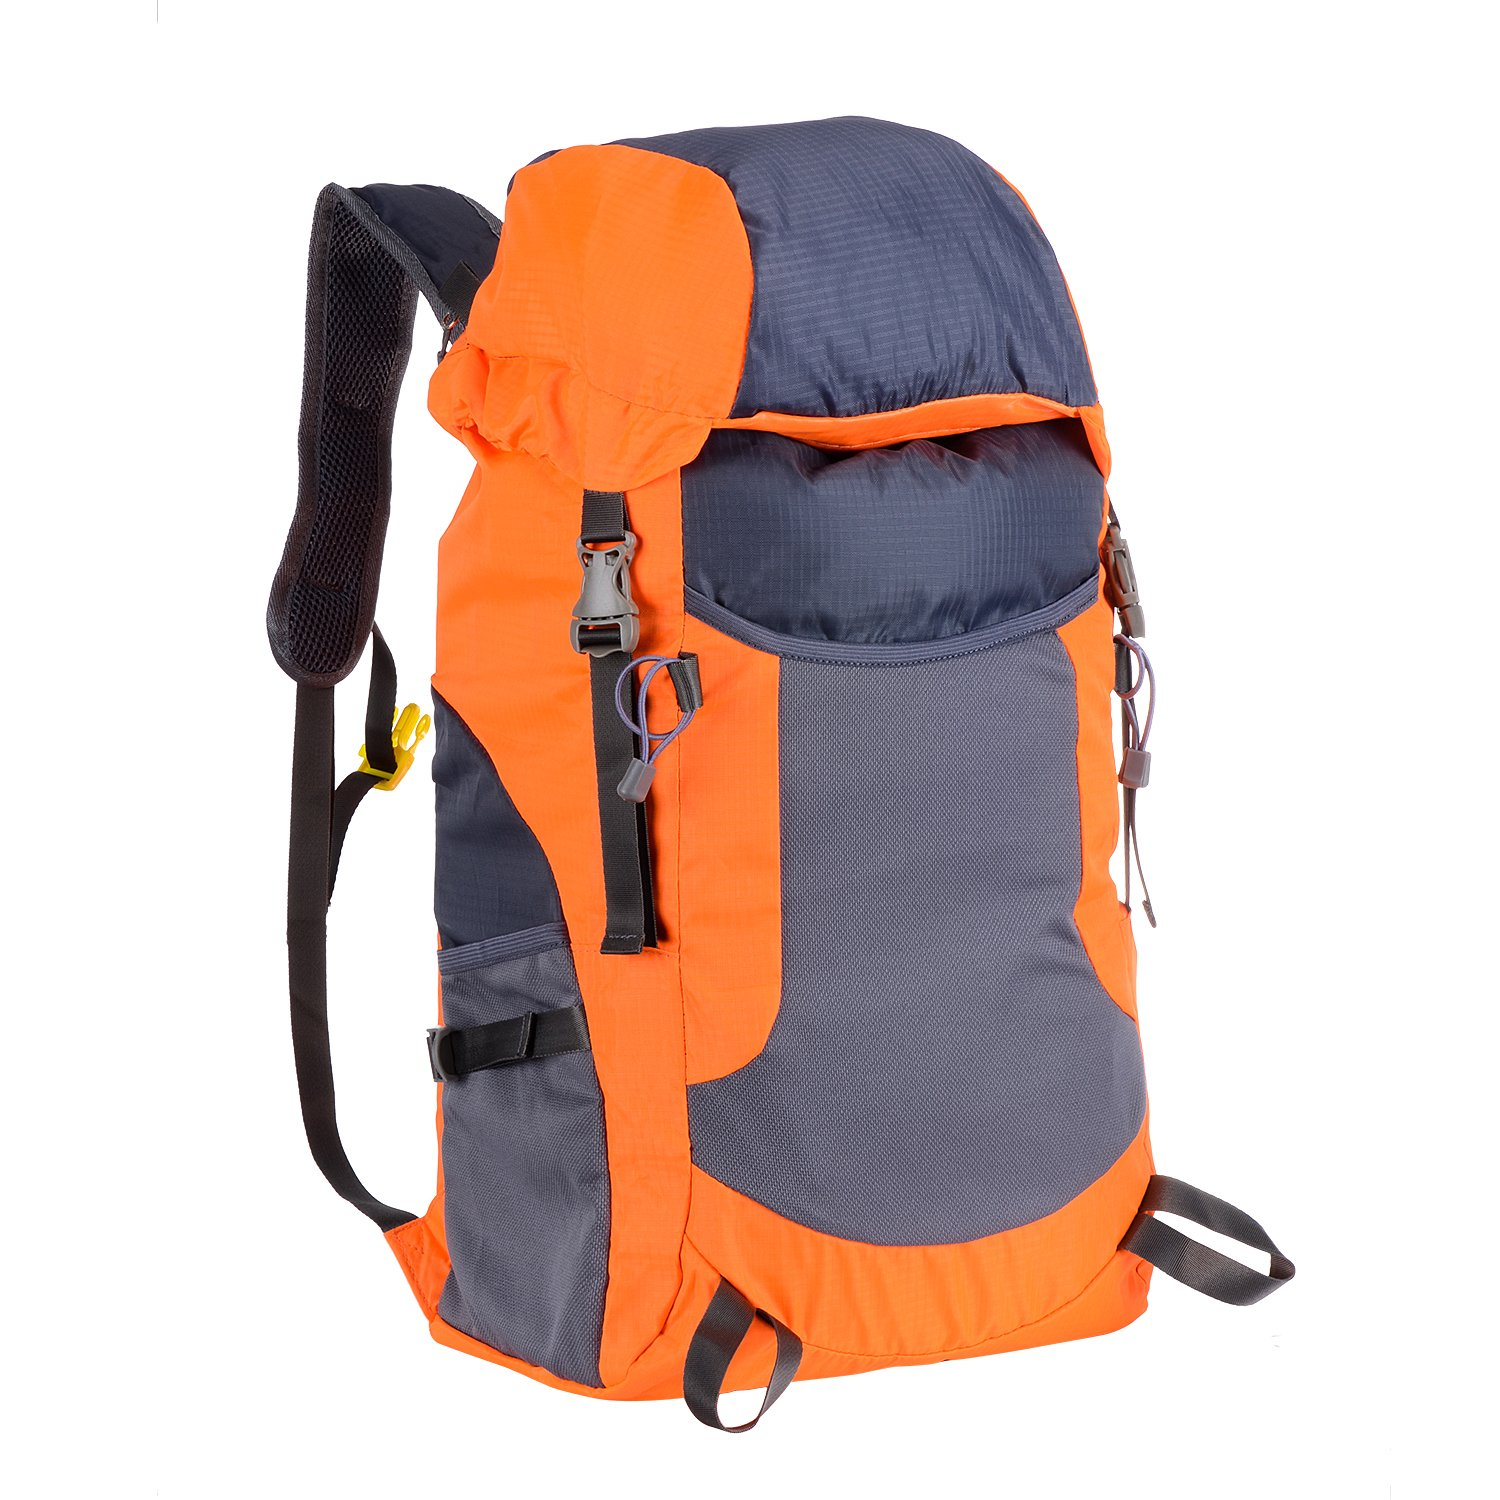 eefb4911c913 Amazon.com   Zoeson 35L Durable Foldable Handy Lightweight Travel Backpack  Daypack (Orange)   Sports   Outdoors